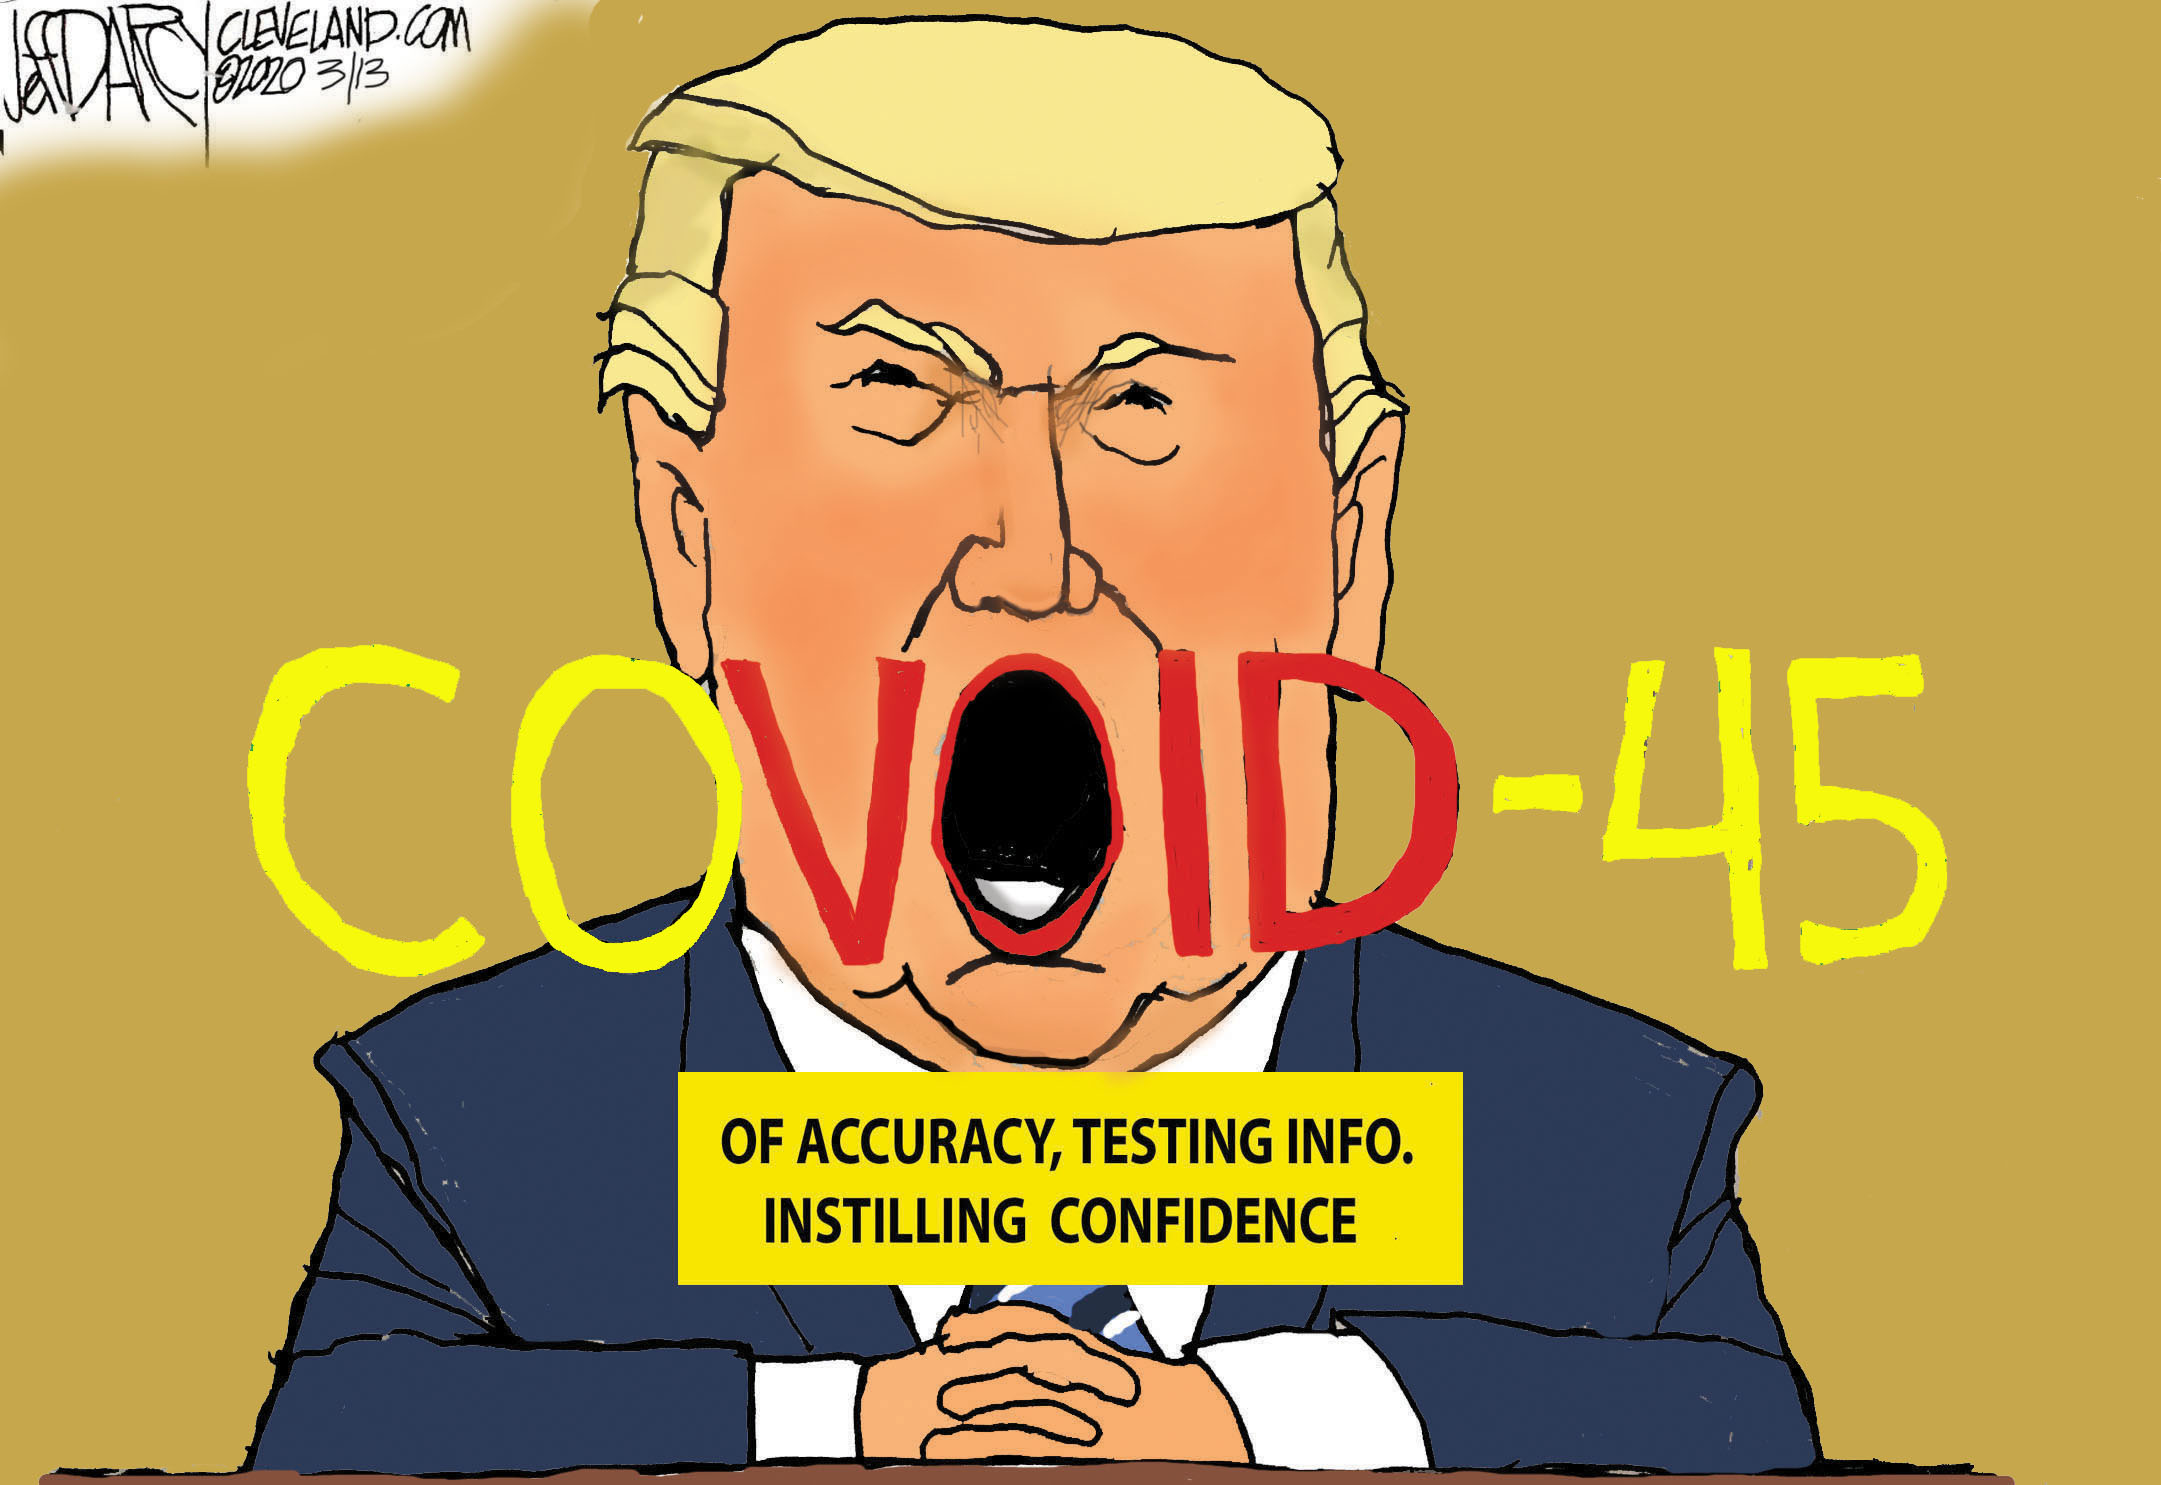 Trump projects incompetence in addressing COVID-19: Darcy cartoon -  cleveland.com